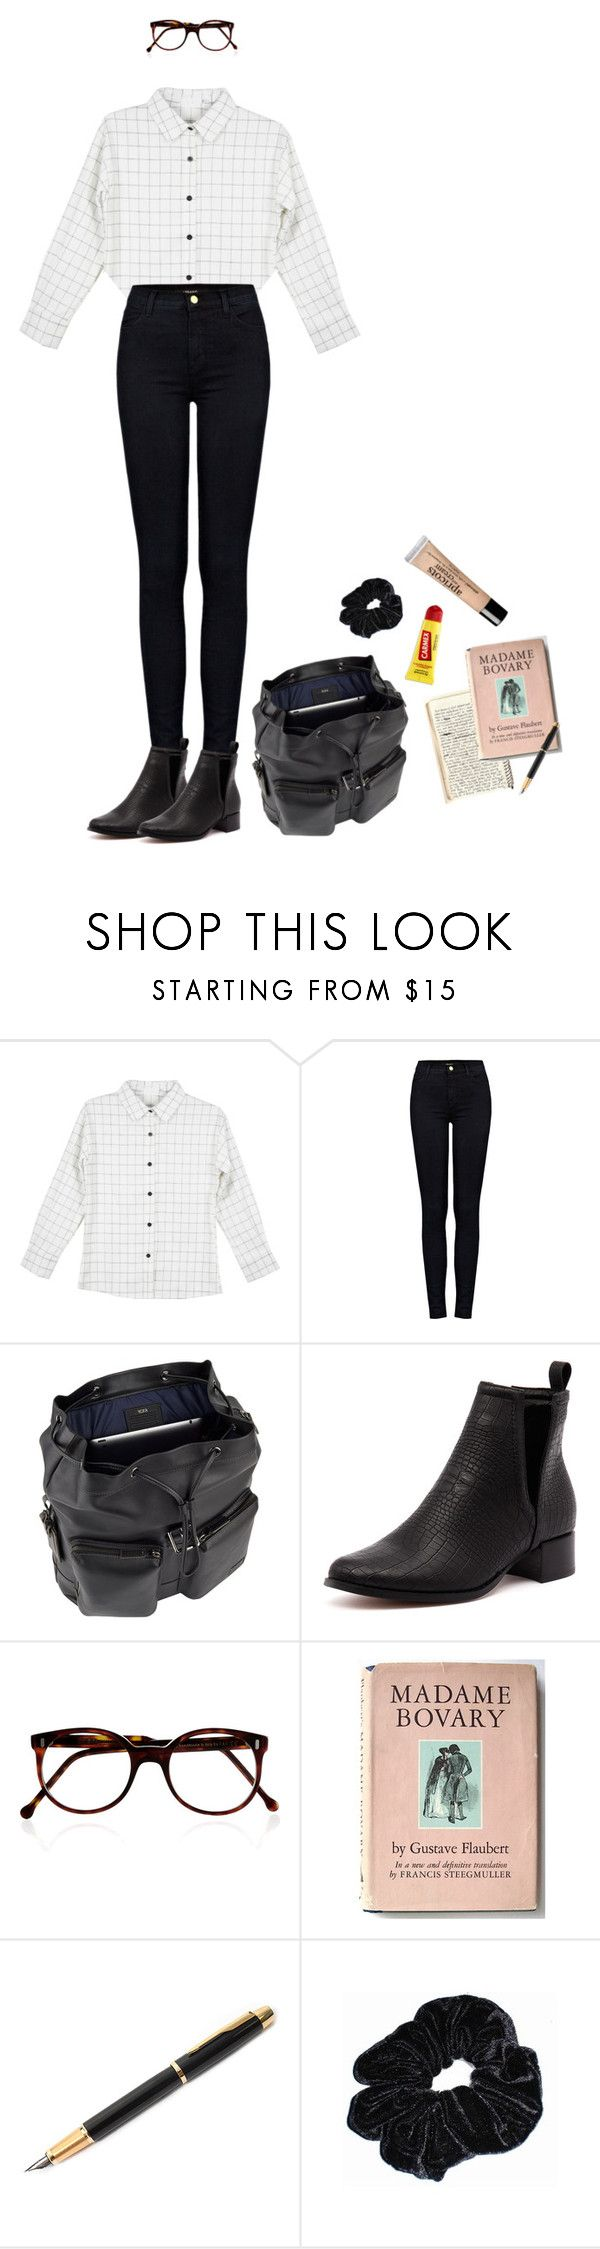 """""""Intern"""" by owlenstar on Polyvore featuring J Brand, Therapy, Cutler and Gross, Carmex, Fountain and philosophy"""